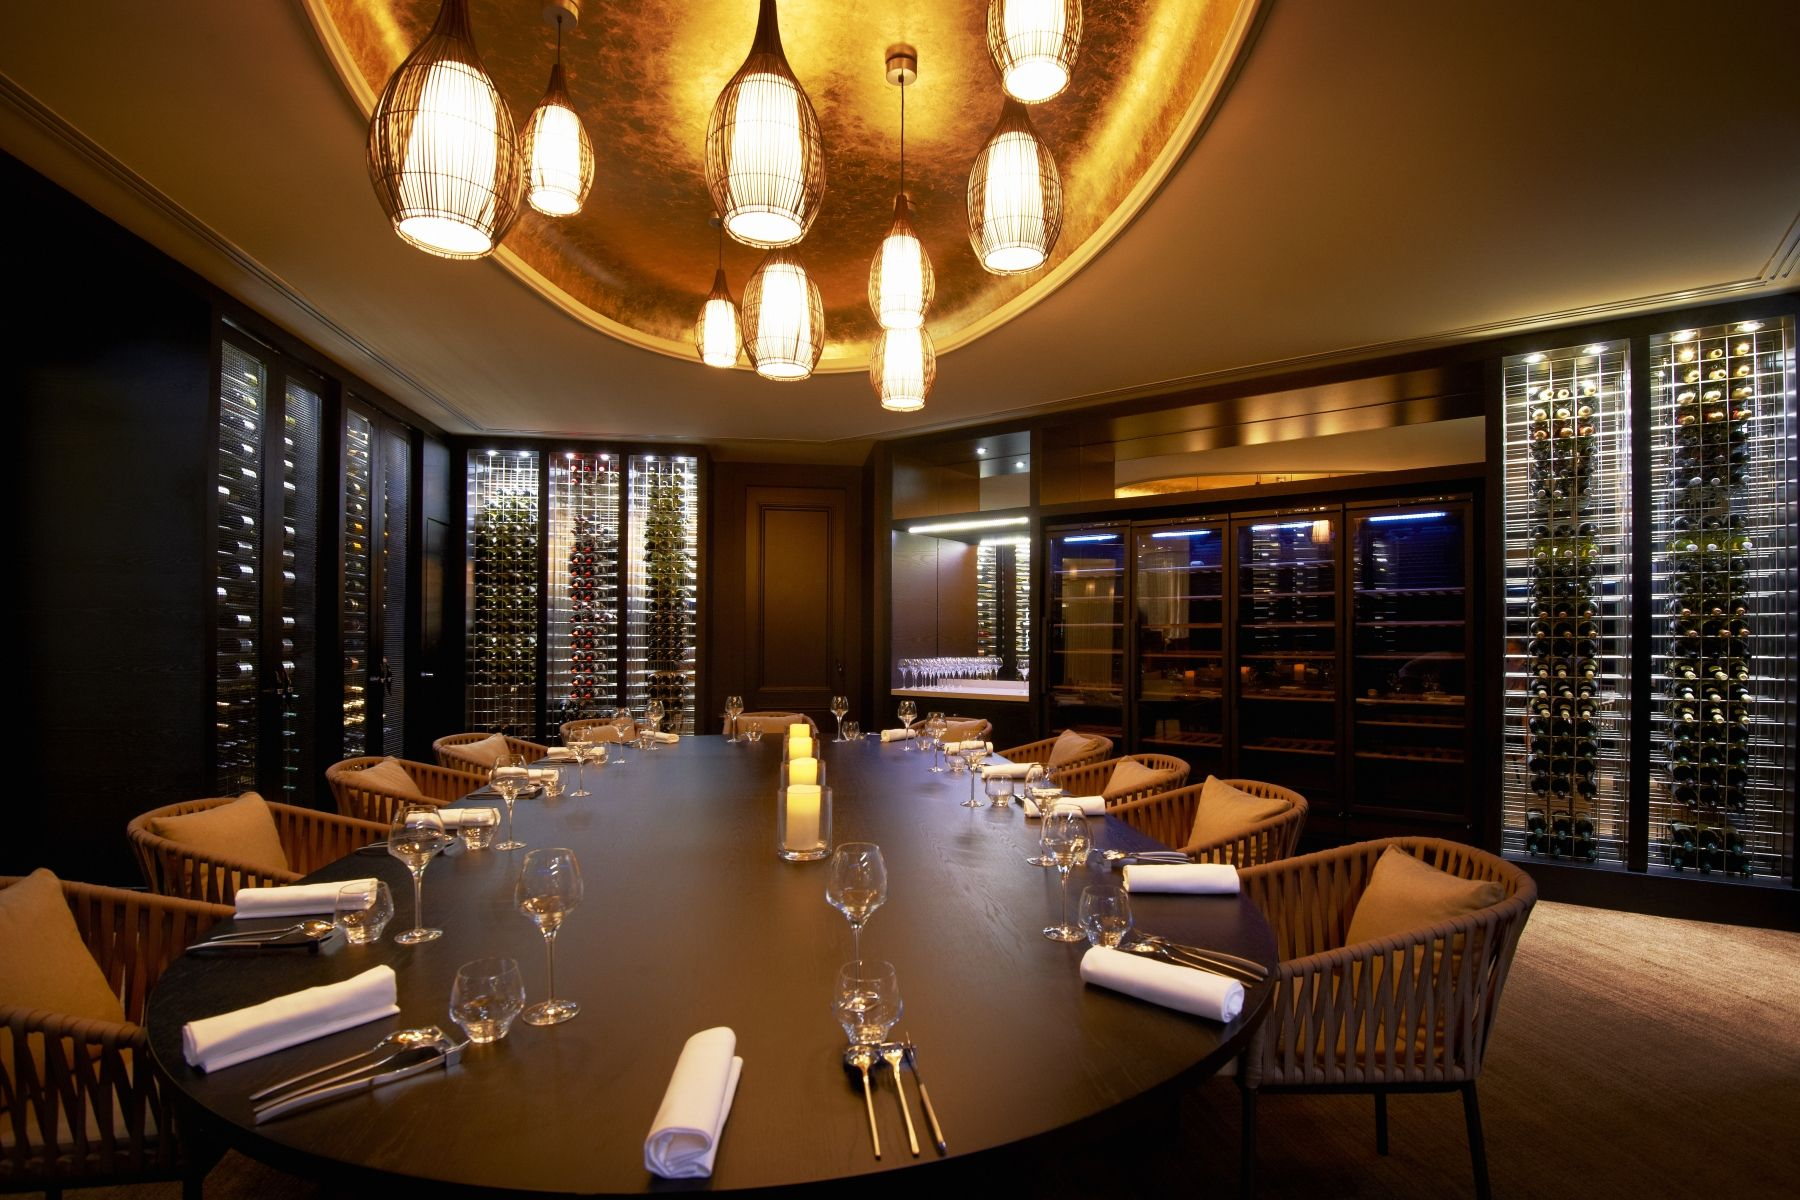 Fontaine S Private Dining Room Restaurant Luxury Decoration